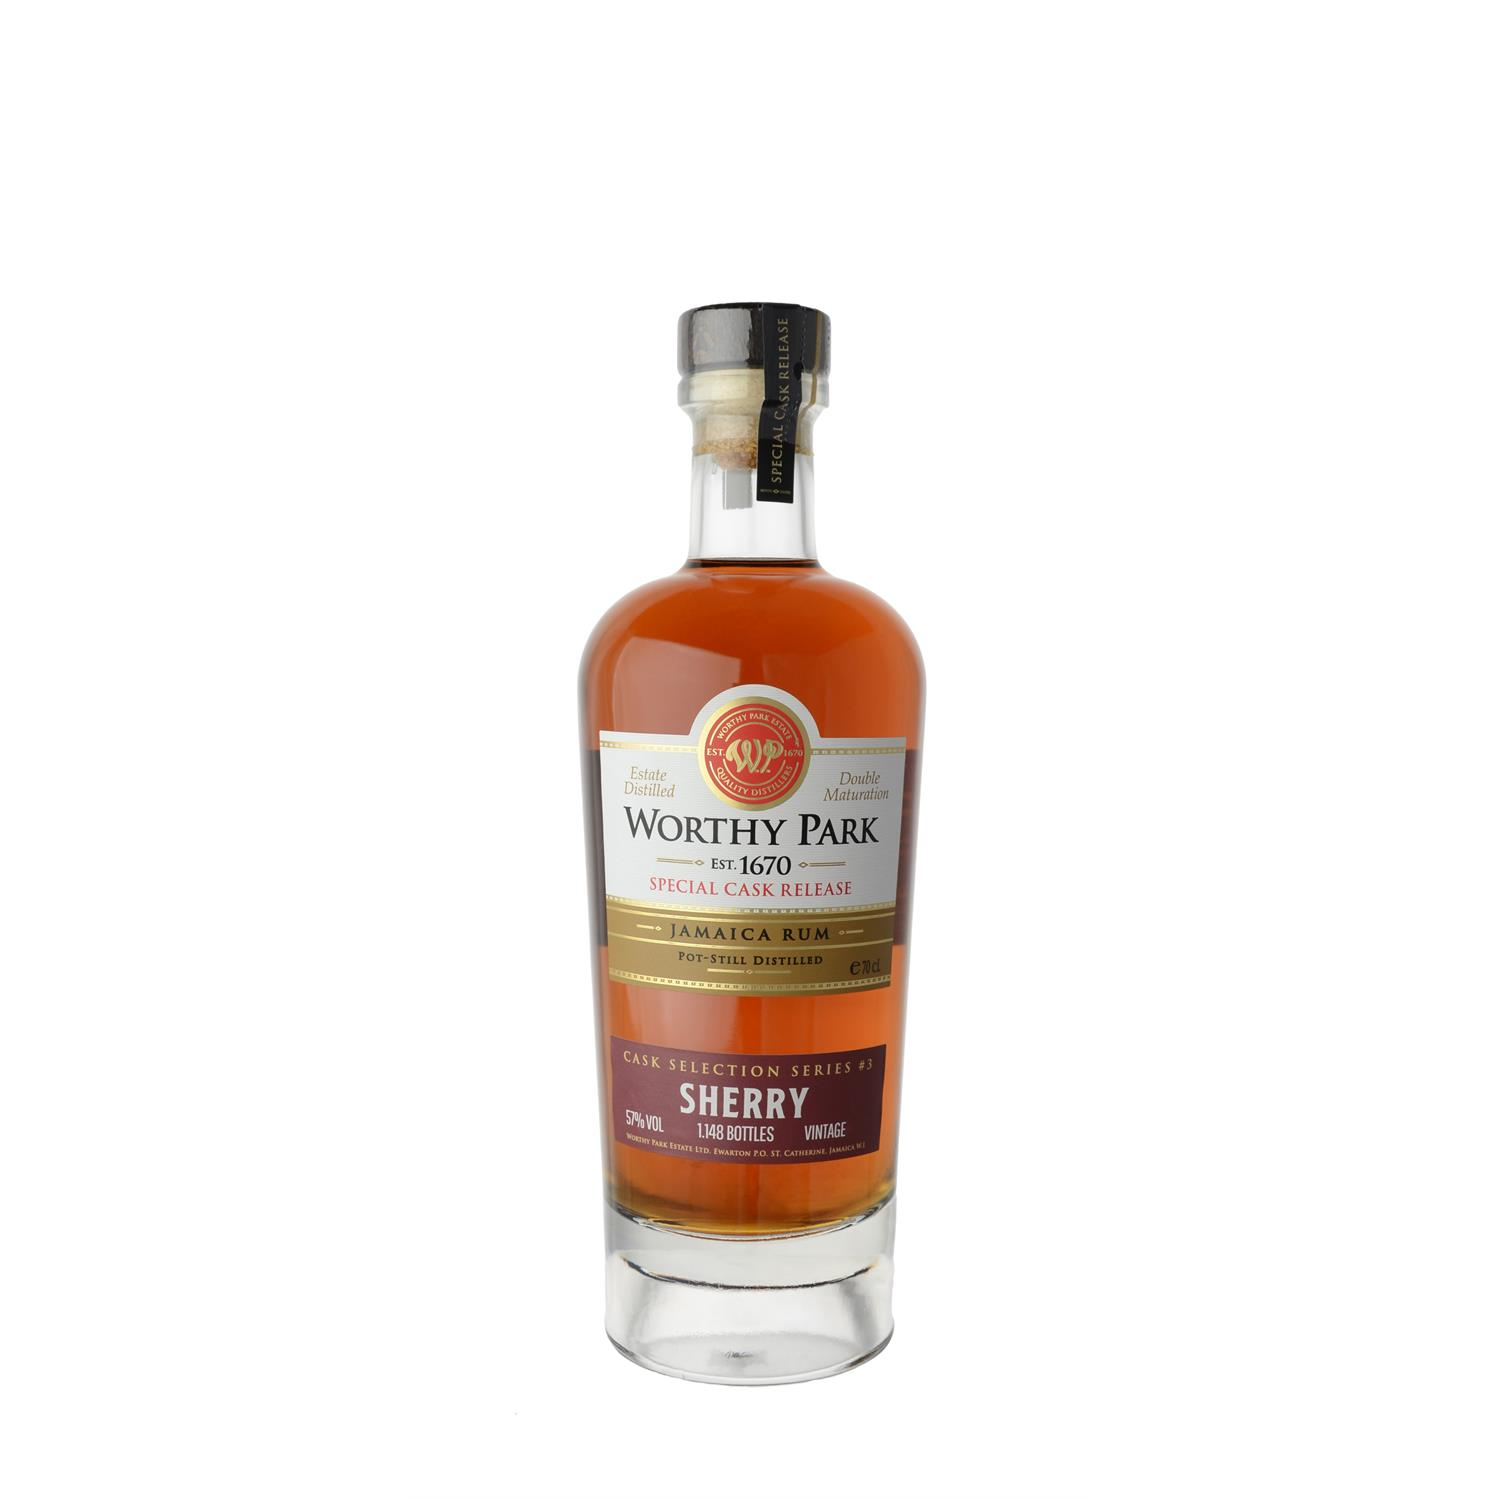 Worthy Park Rum Sherry Cask Finish 2013 70 cl